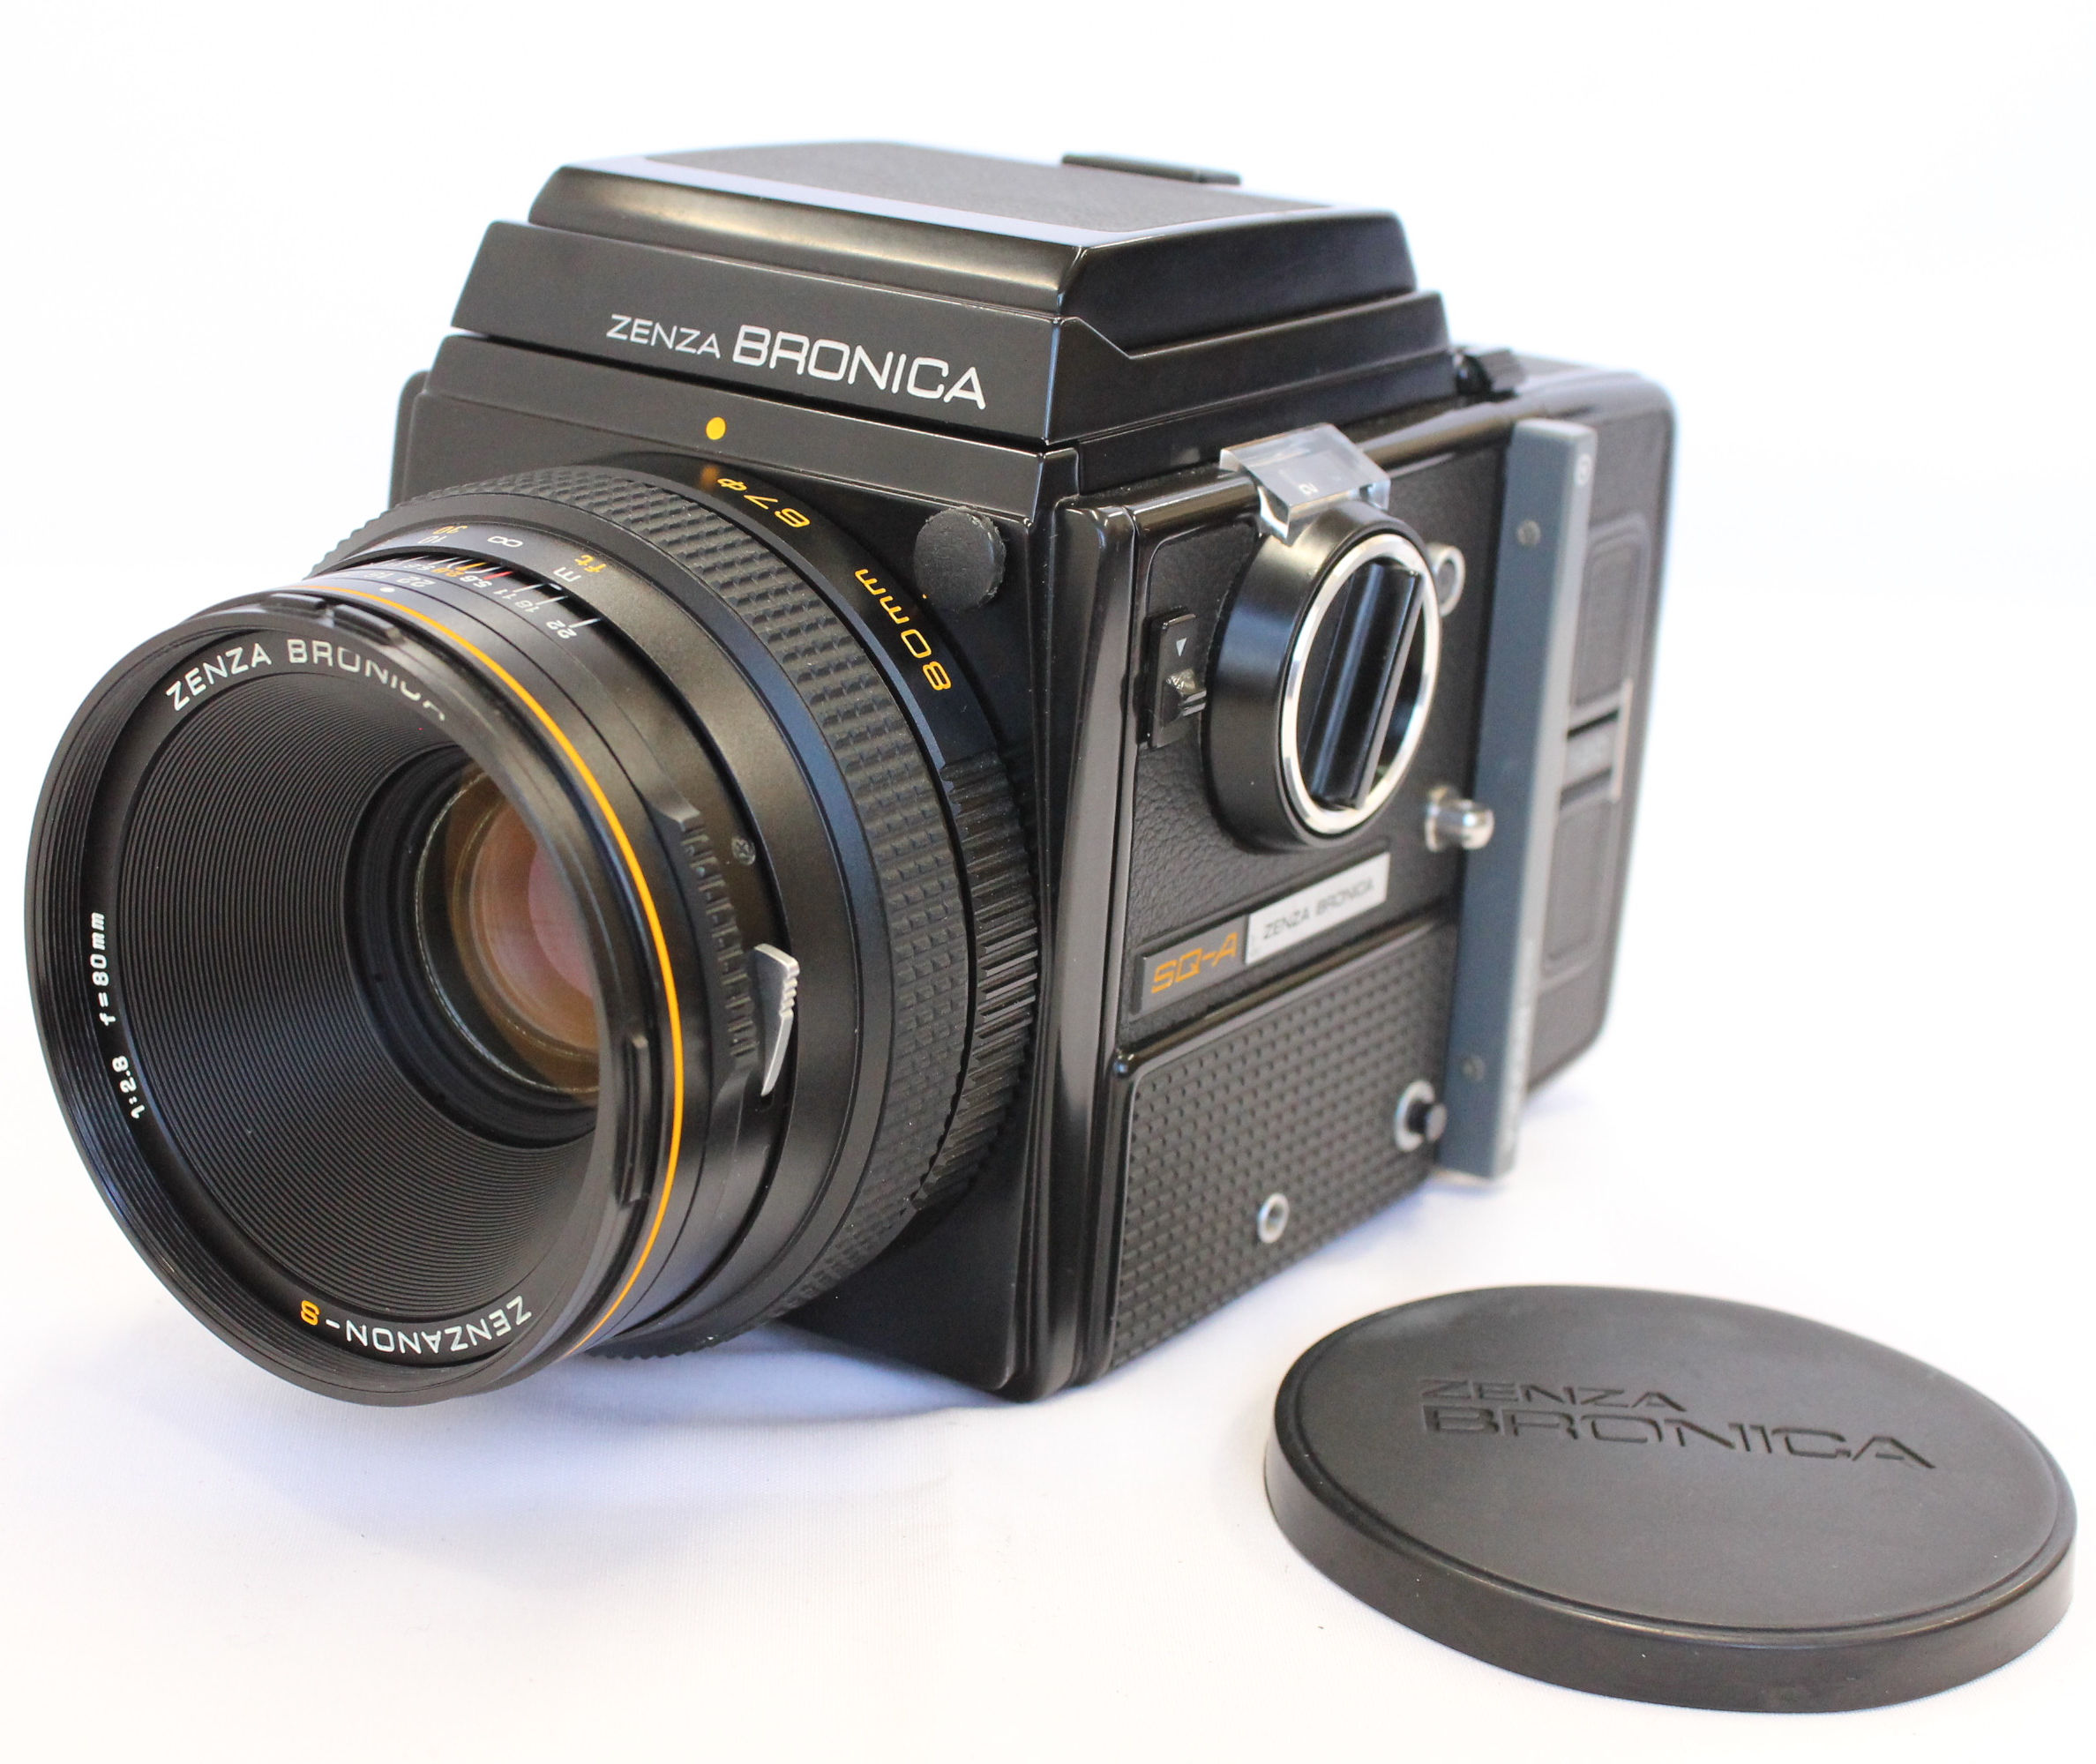 Japan Used Camera Shop | [Near Mint] ZENZA BRONICA SQ-A w/Zenzanon-S 80mm F2.8 Lens from Japan